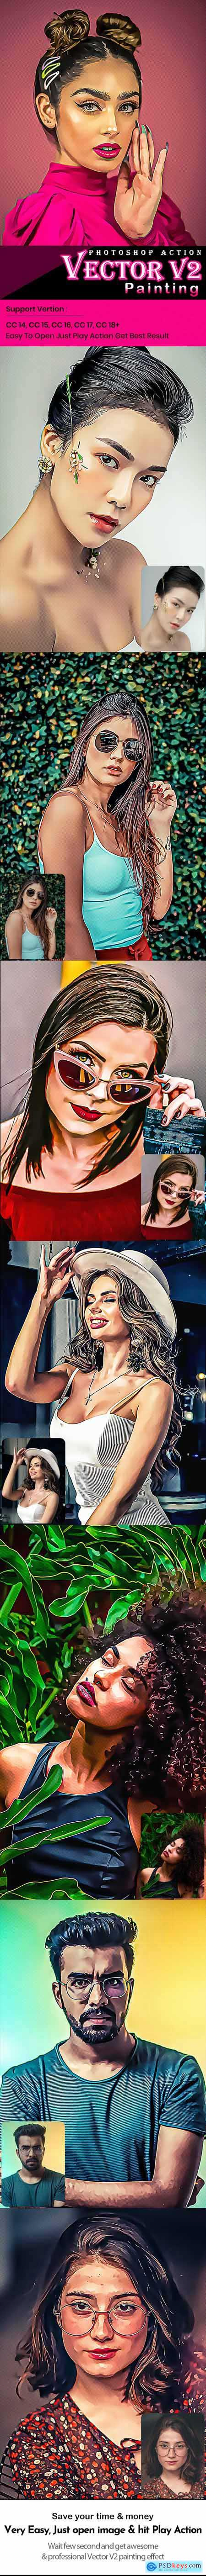 Vector V2 Painting Photoshop Action 29150638